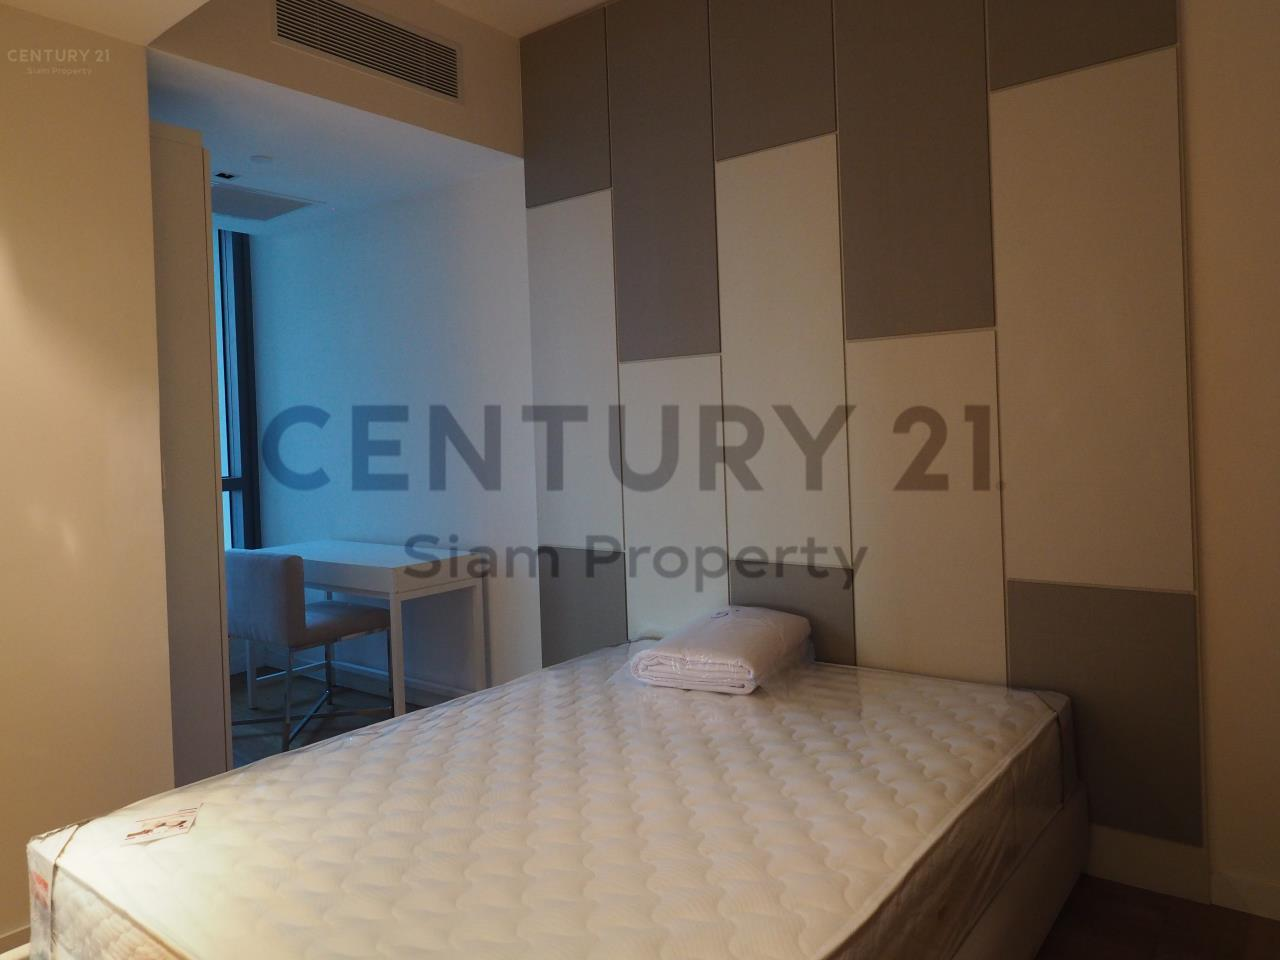 Century21 Siam Property Agency's The Pano 11